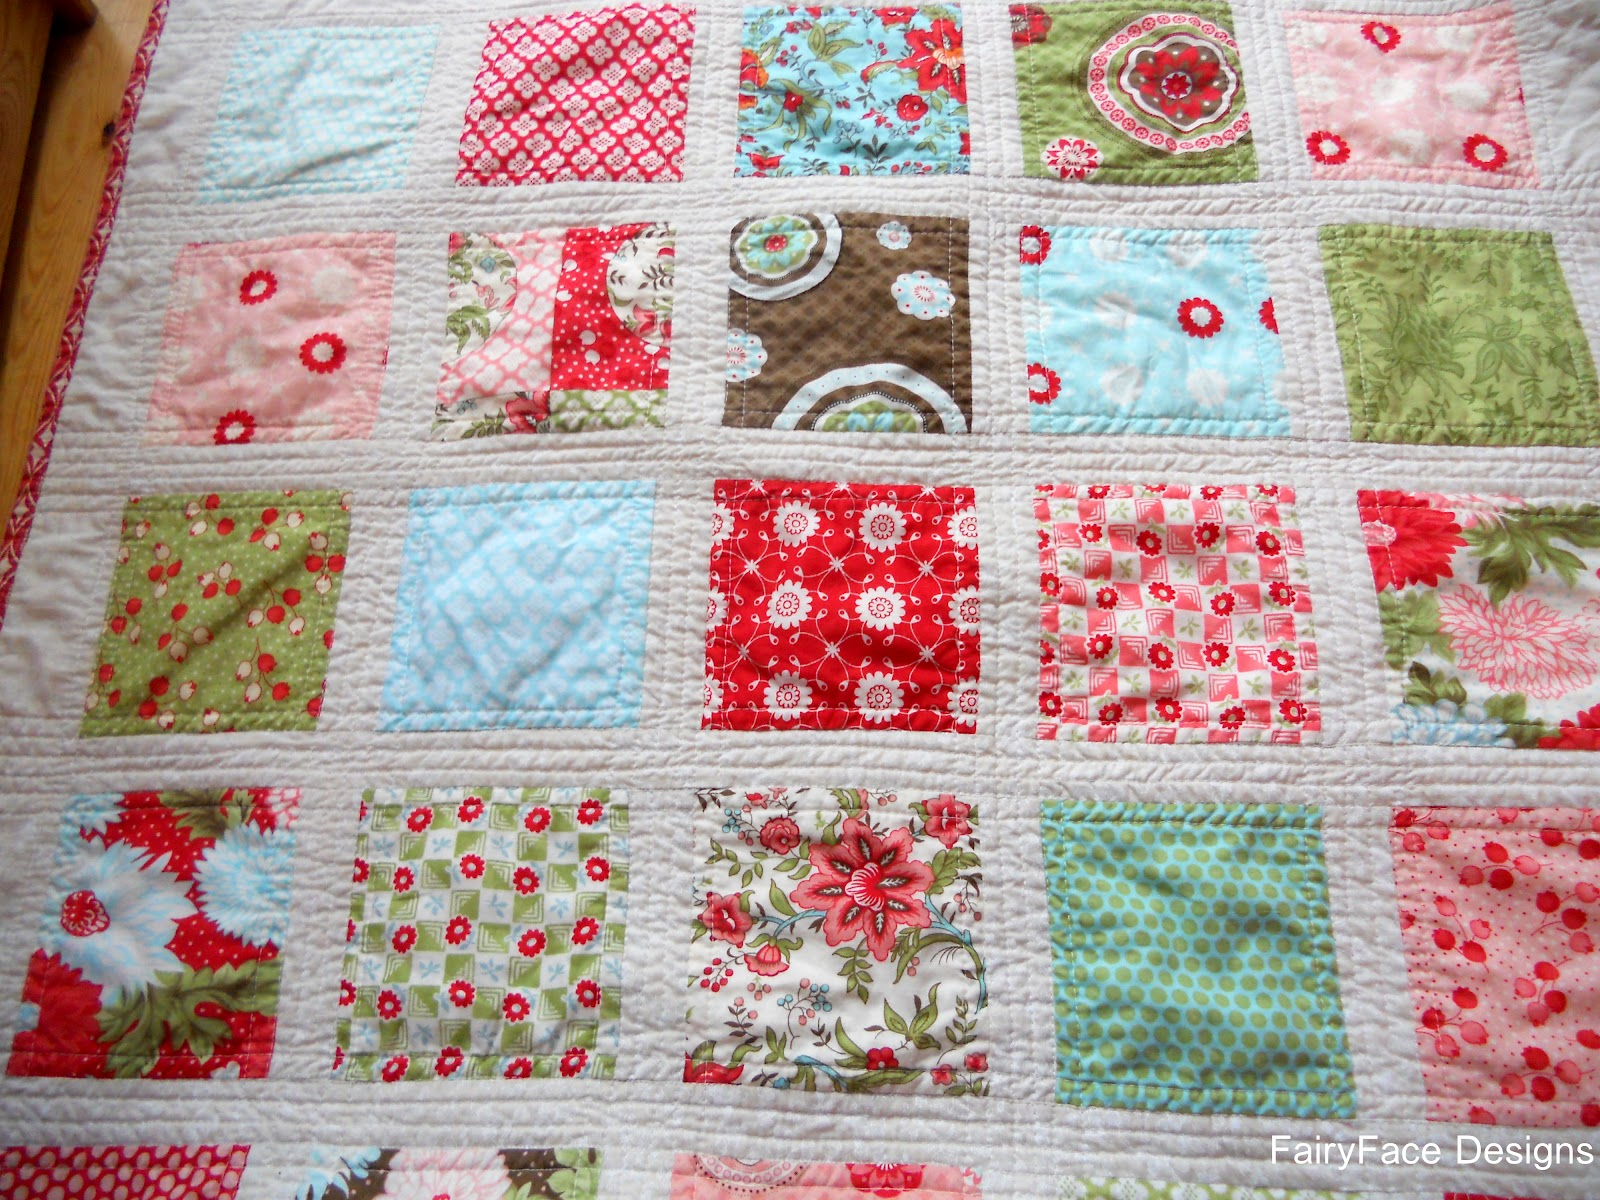 Quilt Patterns Baby - Native Home Garden Design